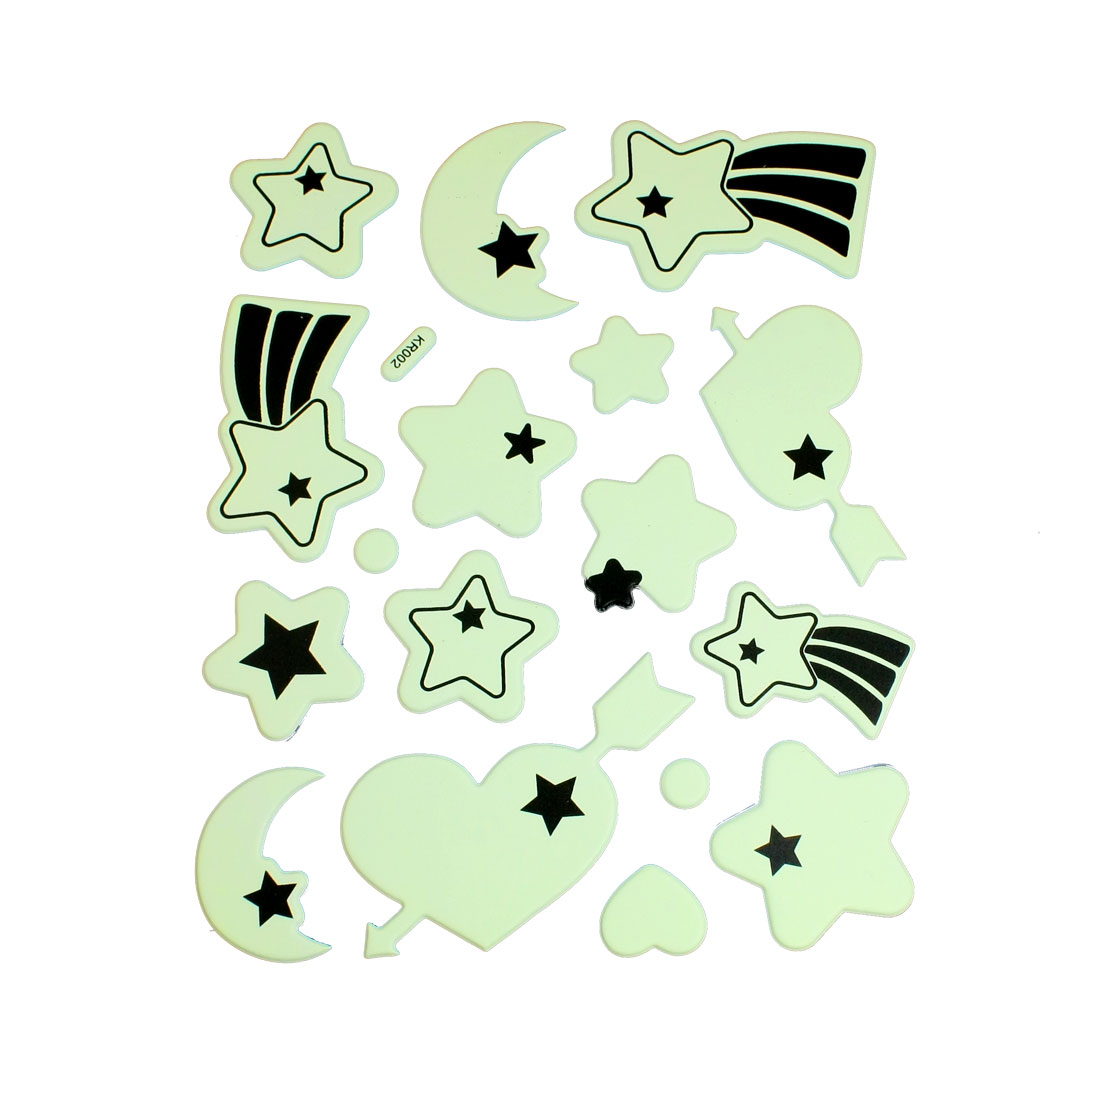 17 Pcs Light Green Black Star Half Moon Heart Shape Luminous Sticker Decals